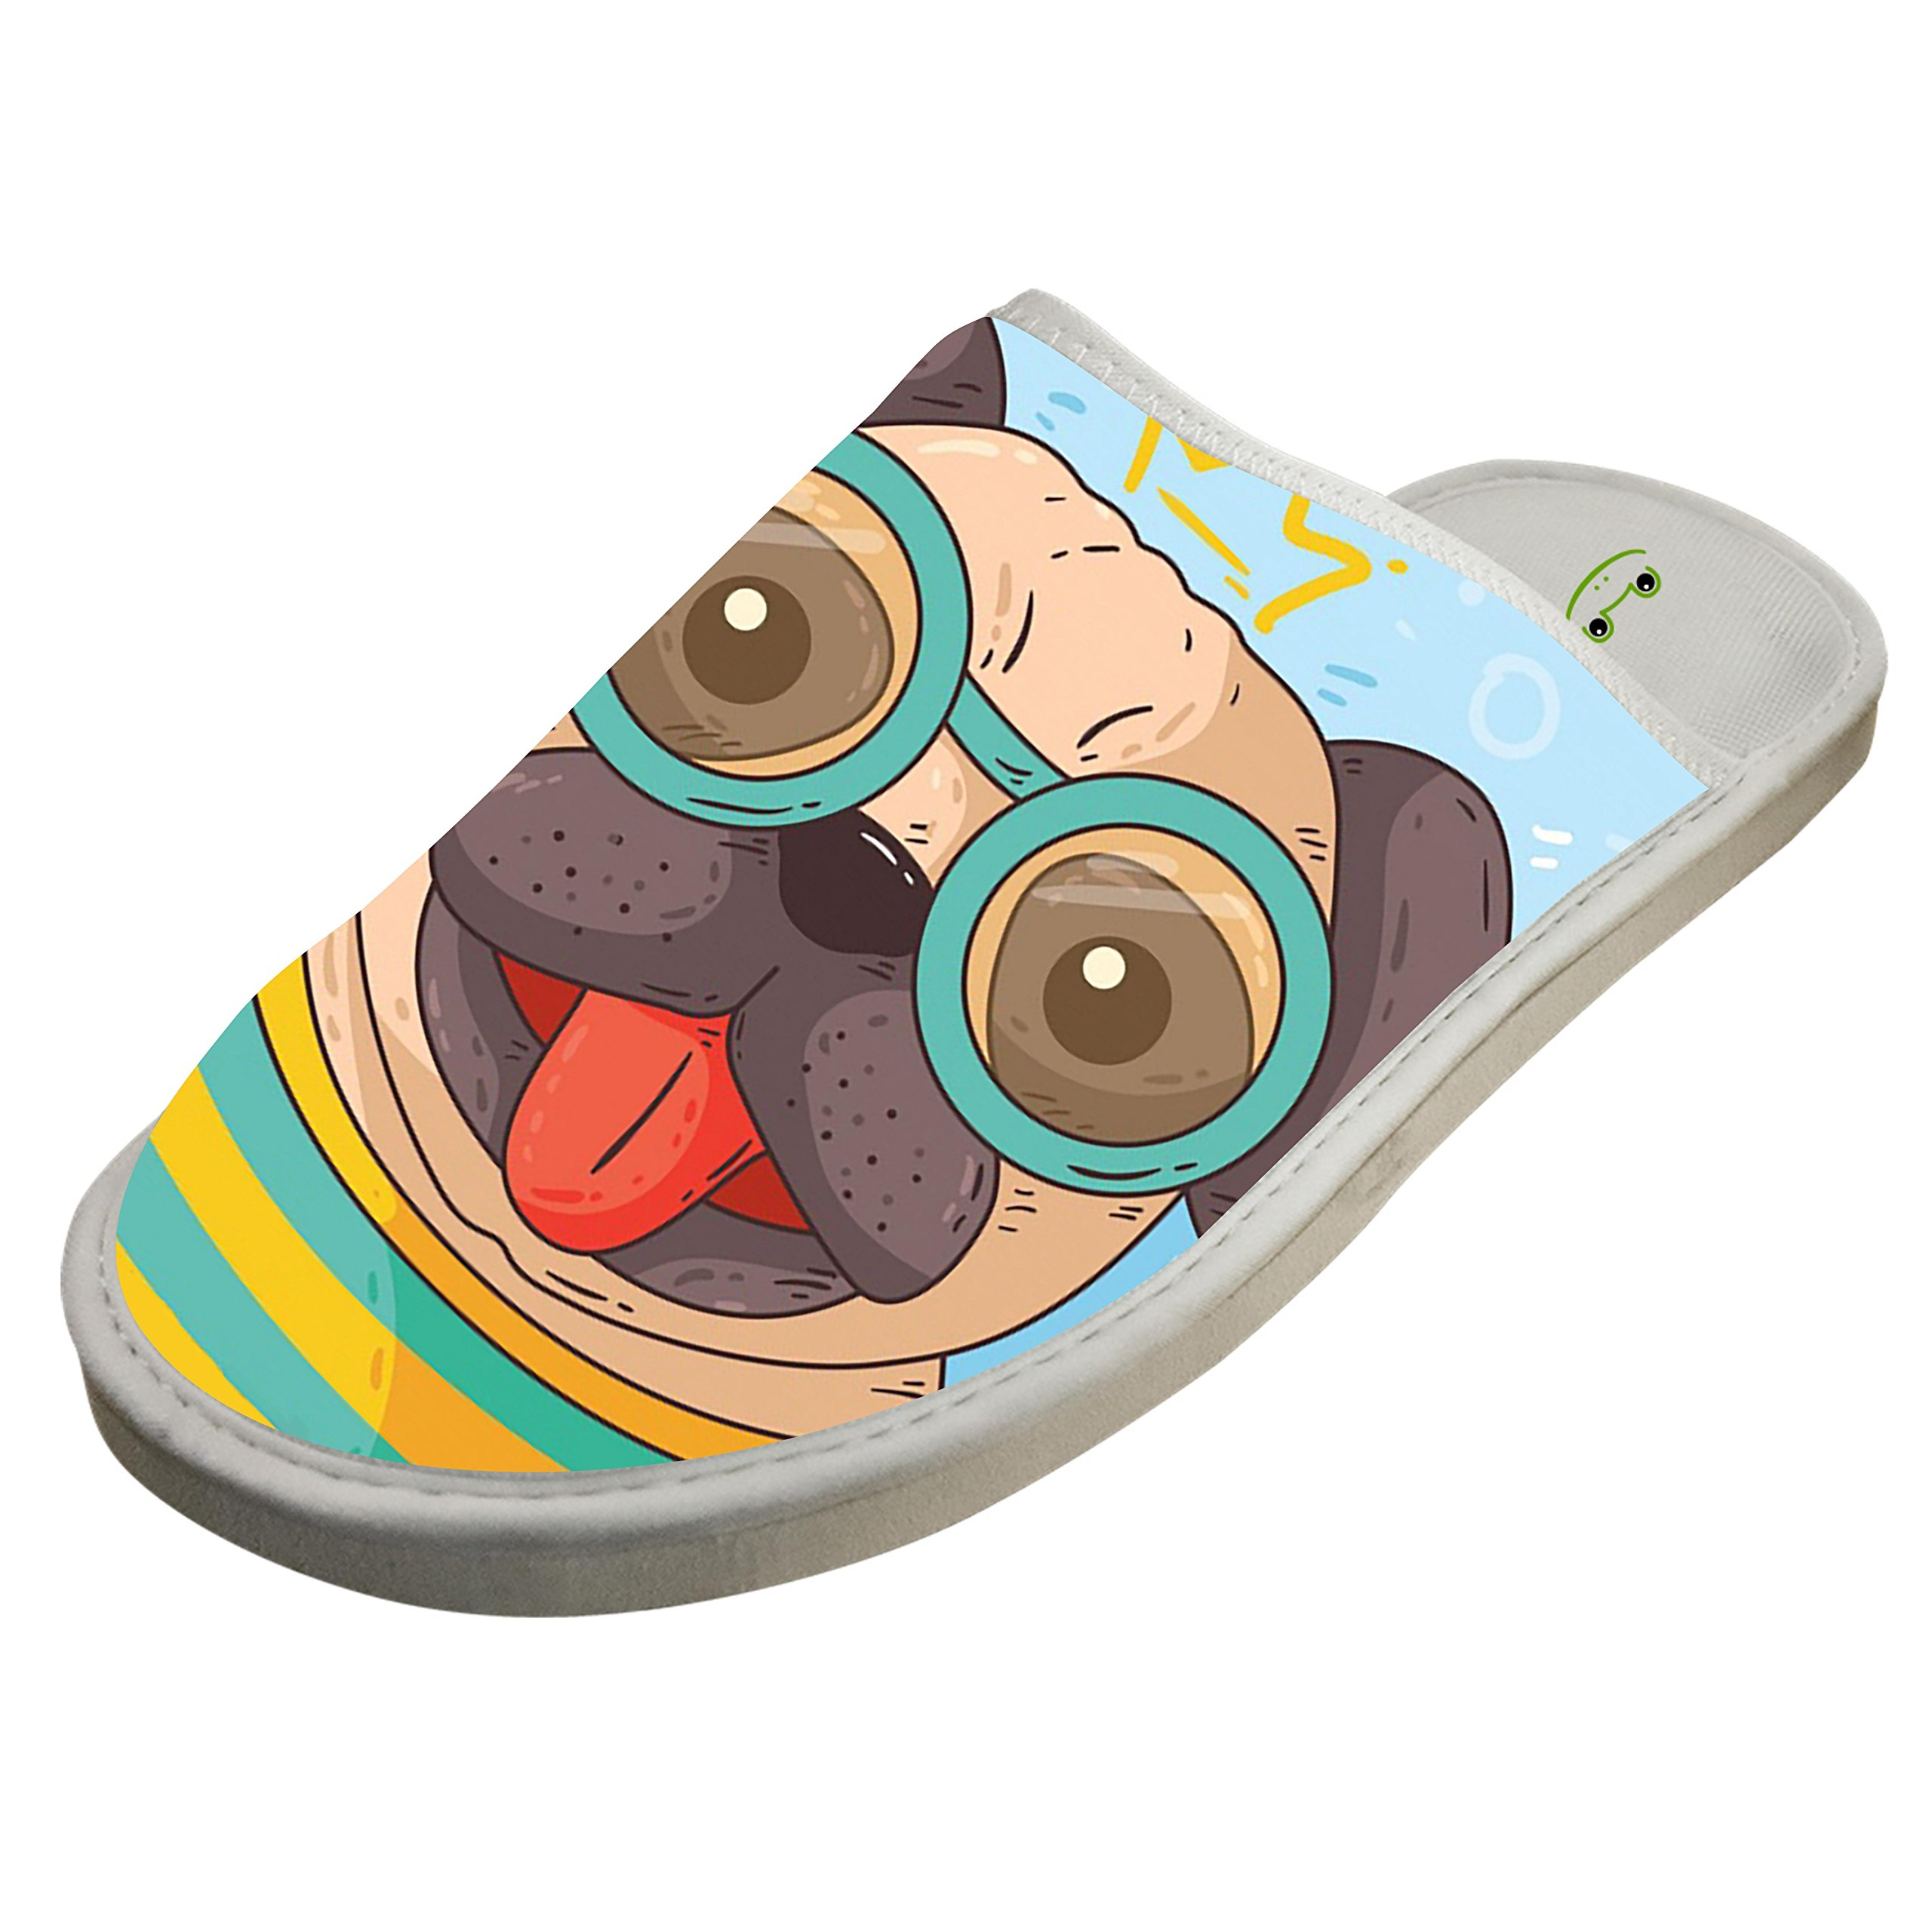 KOUY Pug With Glasses Closed Toe Cotton Slippers Warm Soft Indoor Shoes Non-watertight 9 D(M) US